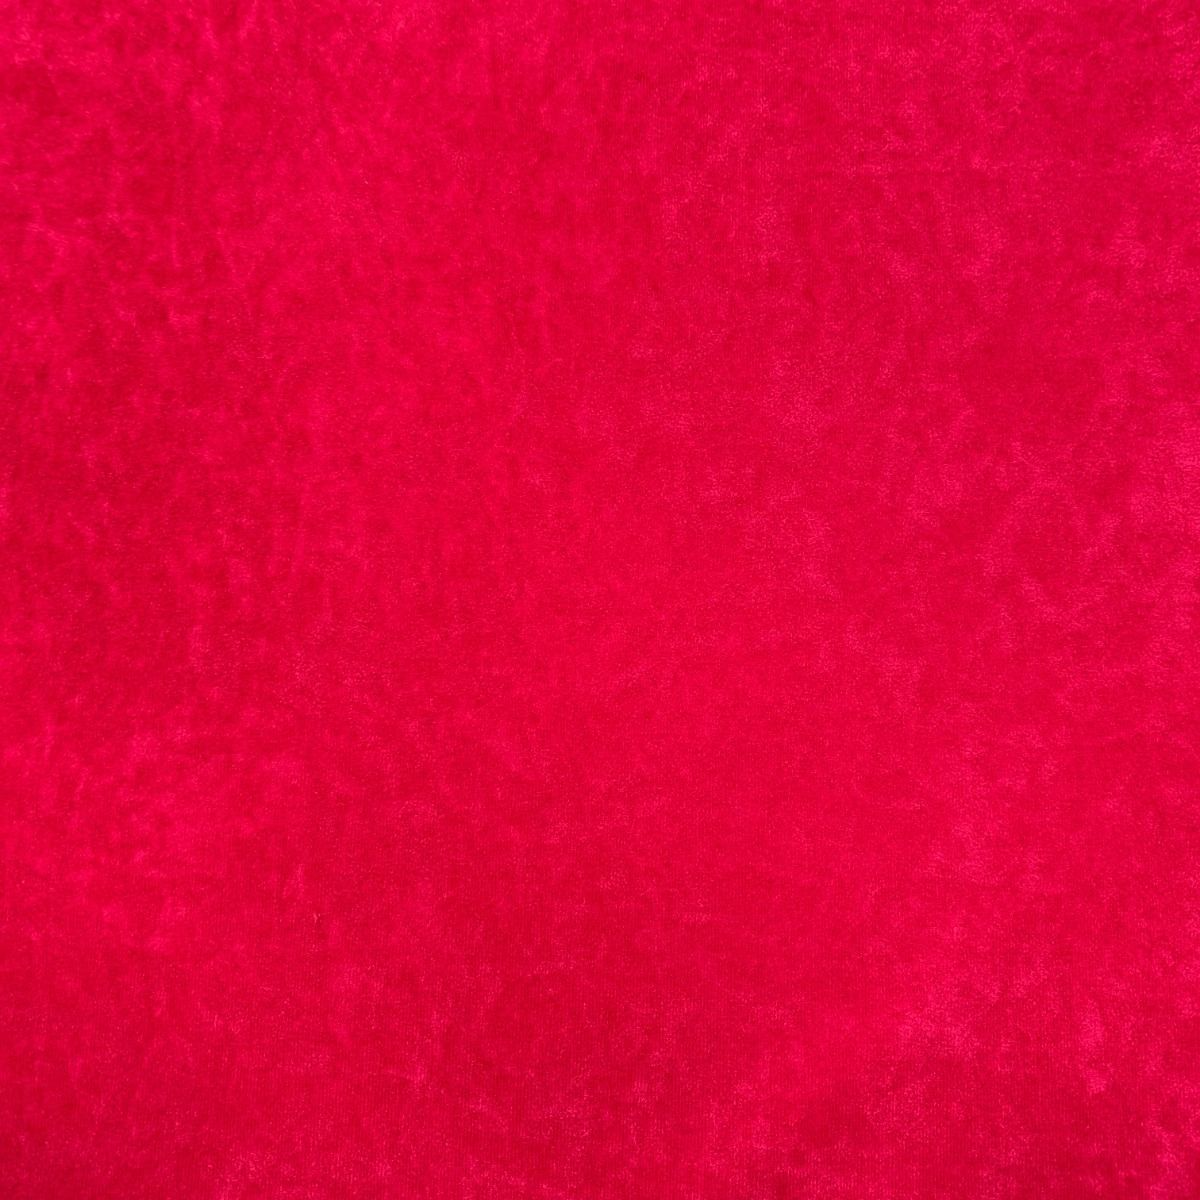 Red Suede Cloth